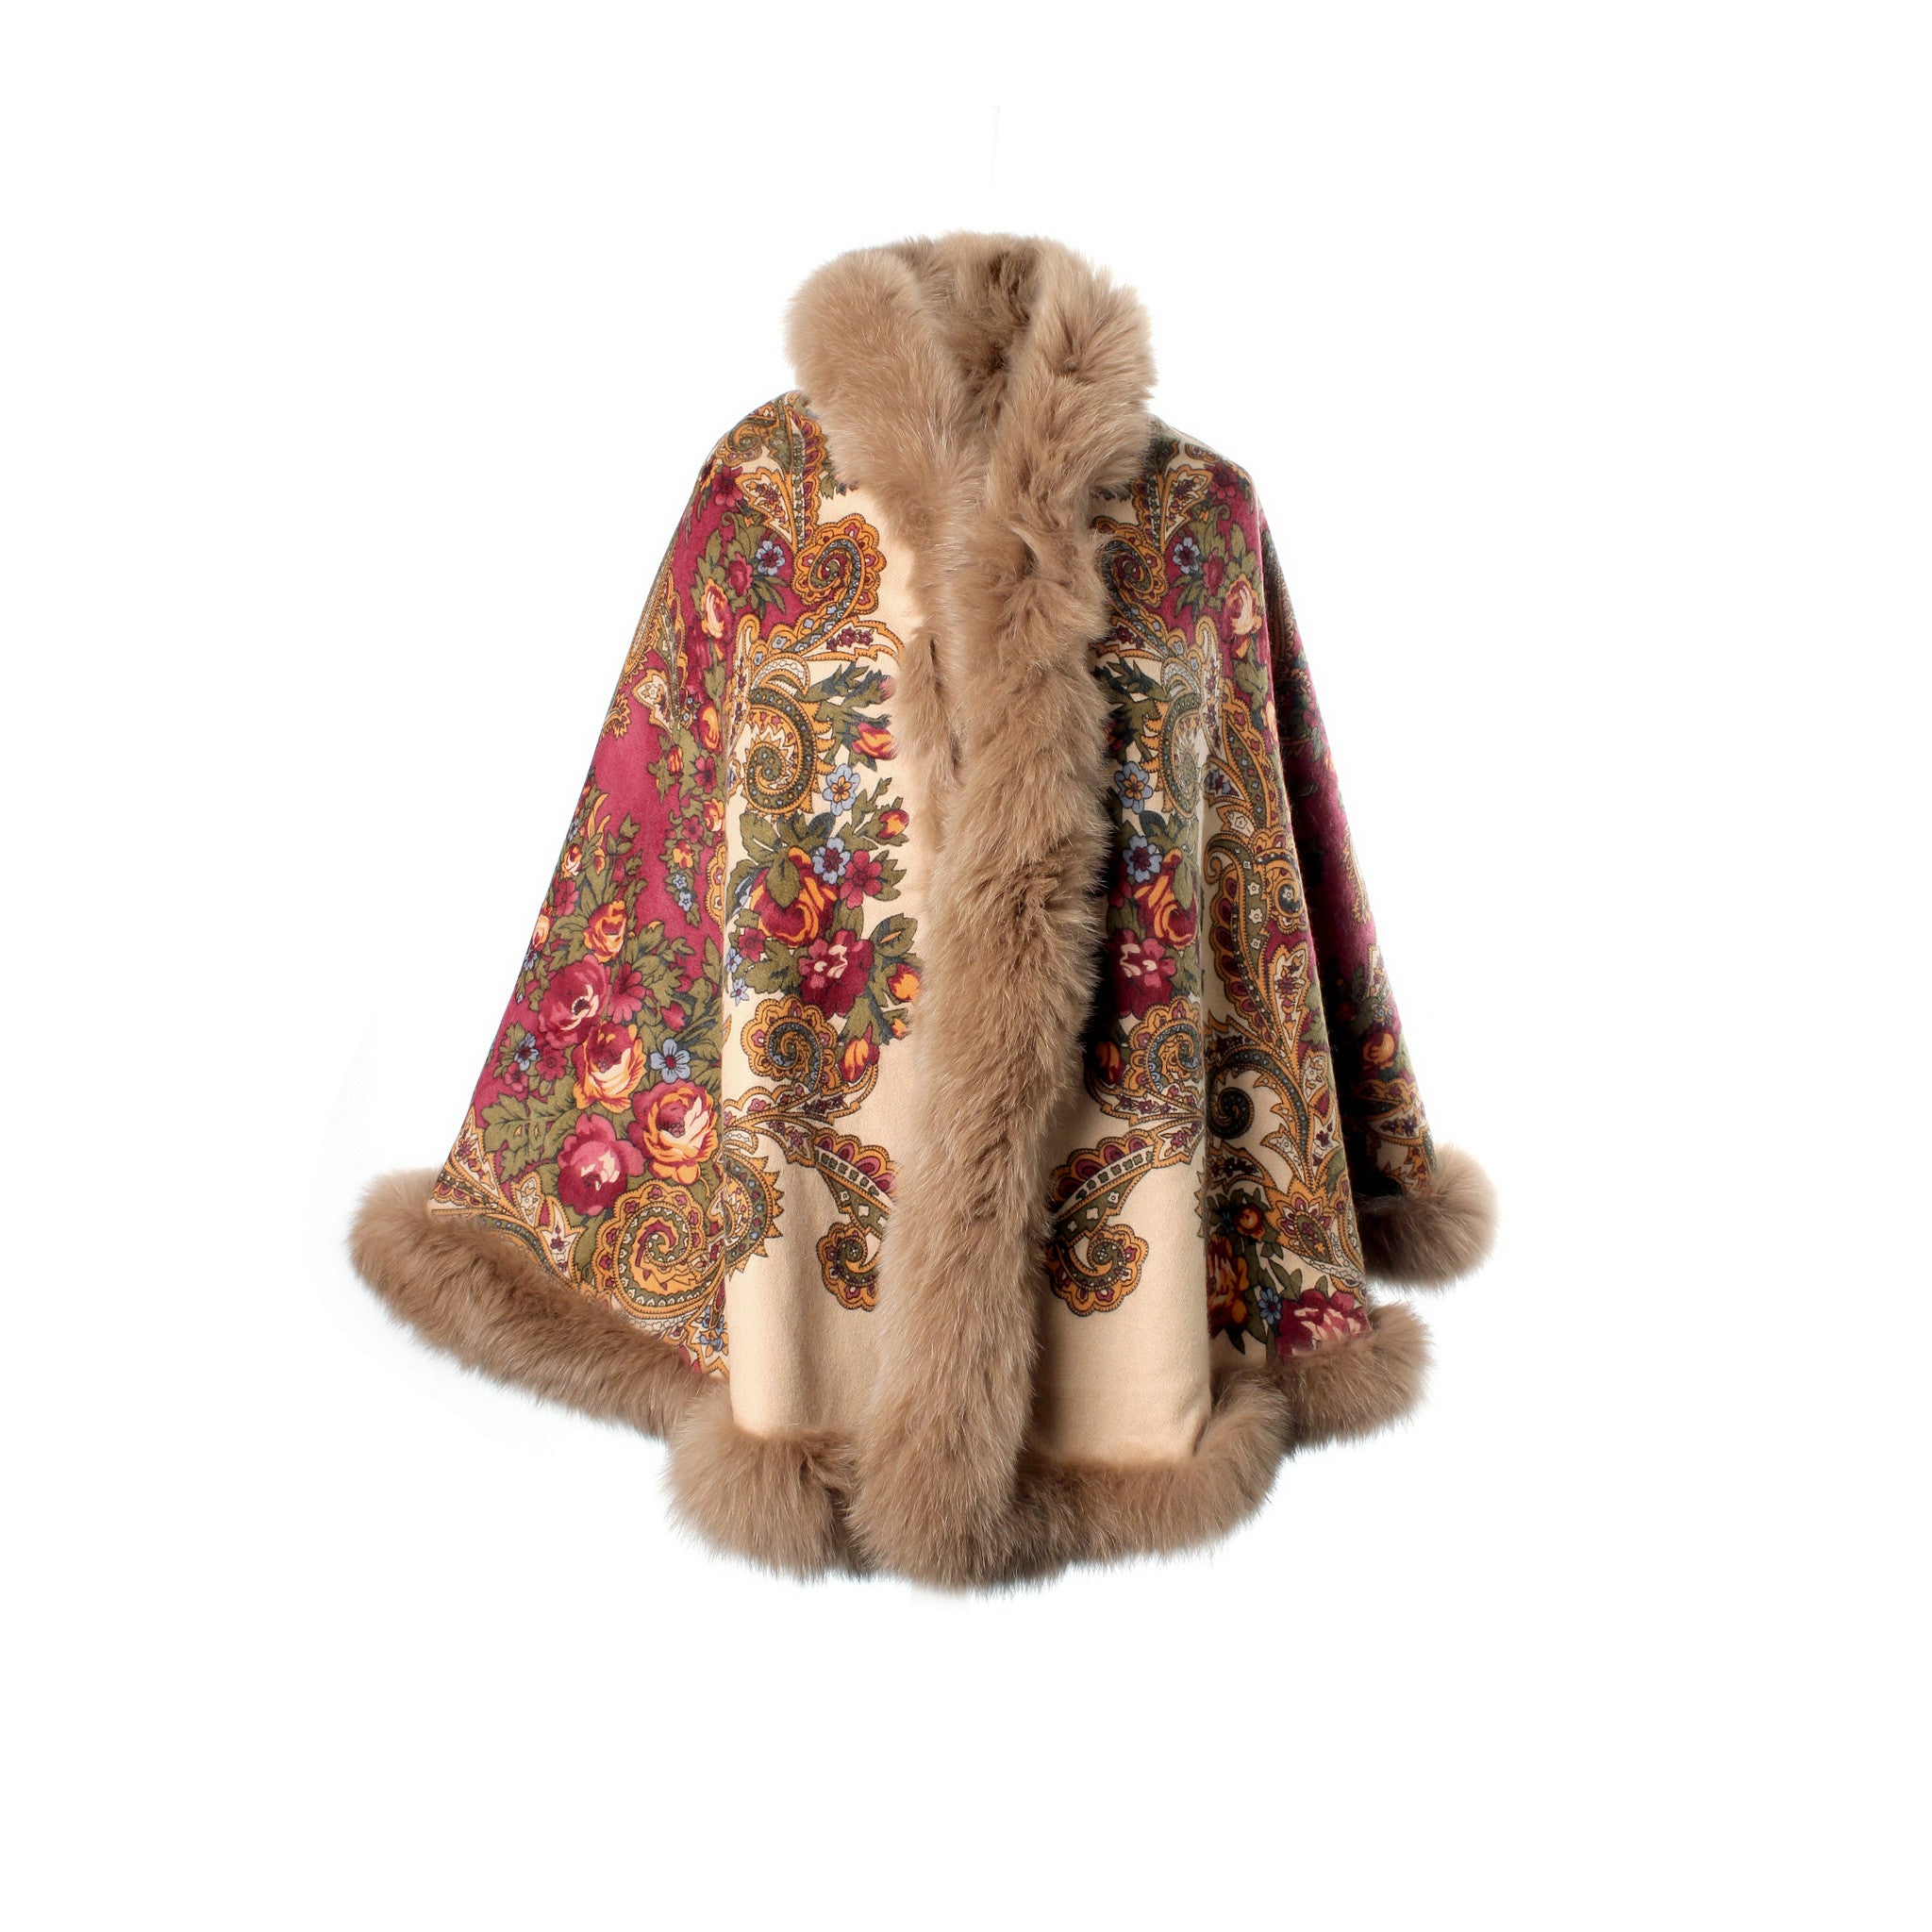 Luxury Reversible Cashmere Cape with fur trim | Beige Side A | buy at The Cashmere Choice | London